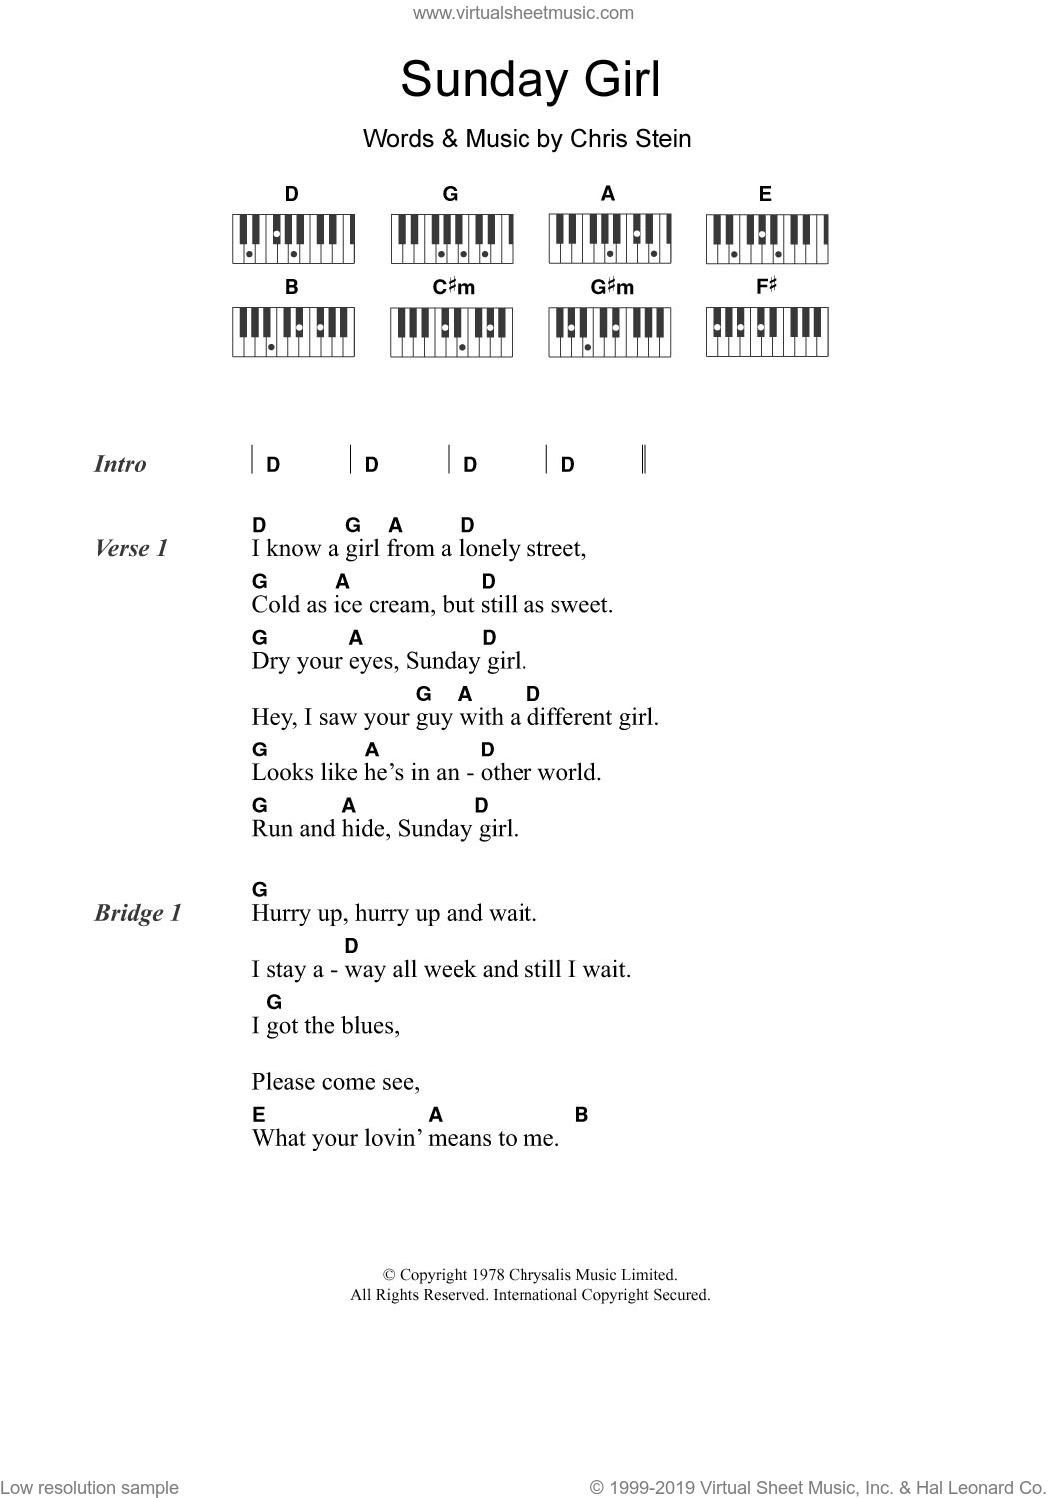 Sunday Girl sheet music for piano solo (chords, lyrics, melody) by Chris Stein